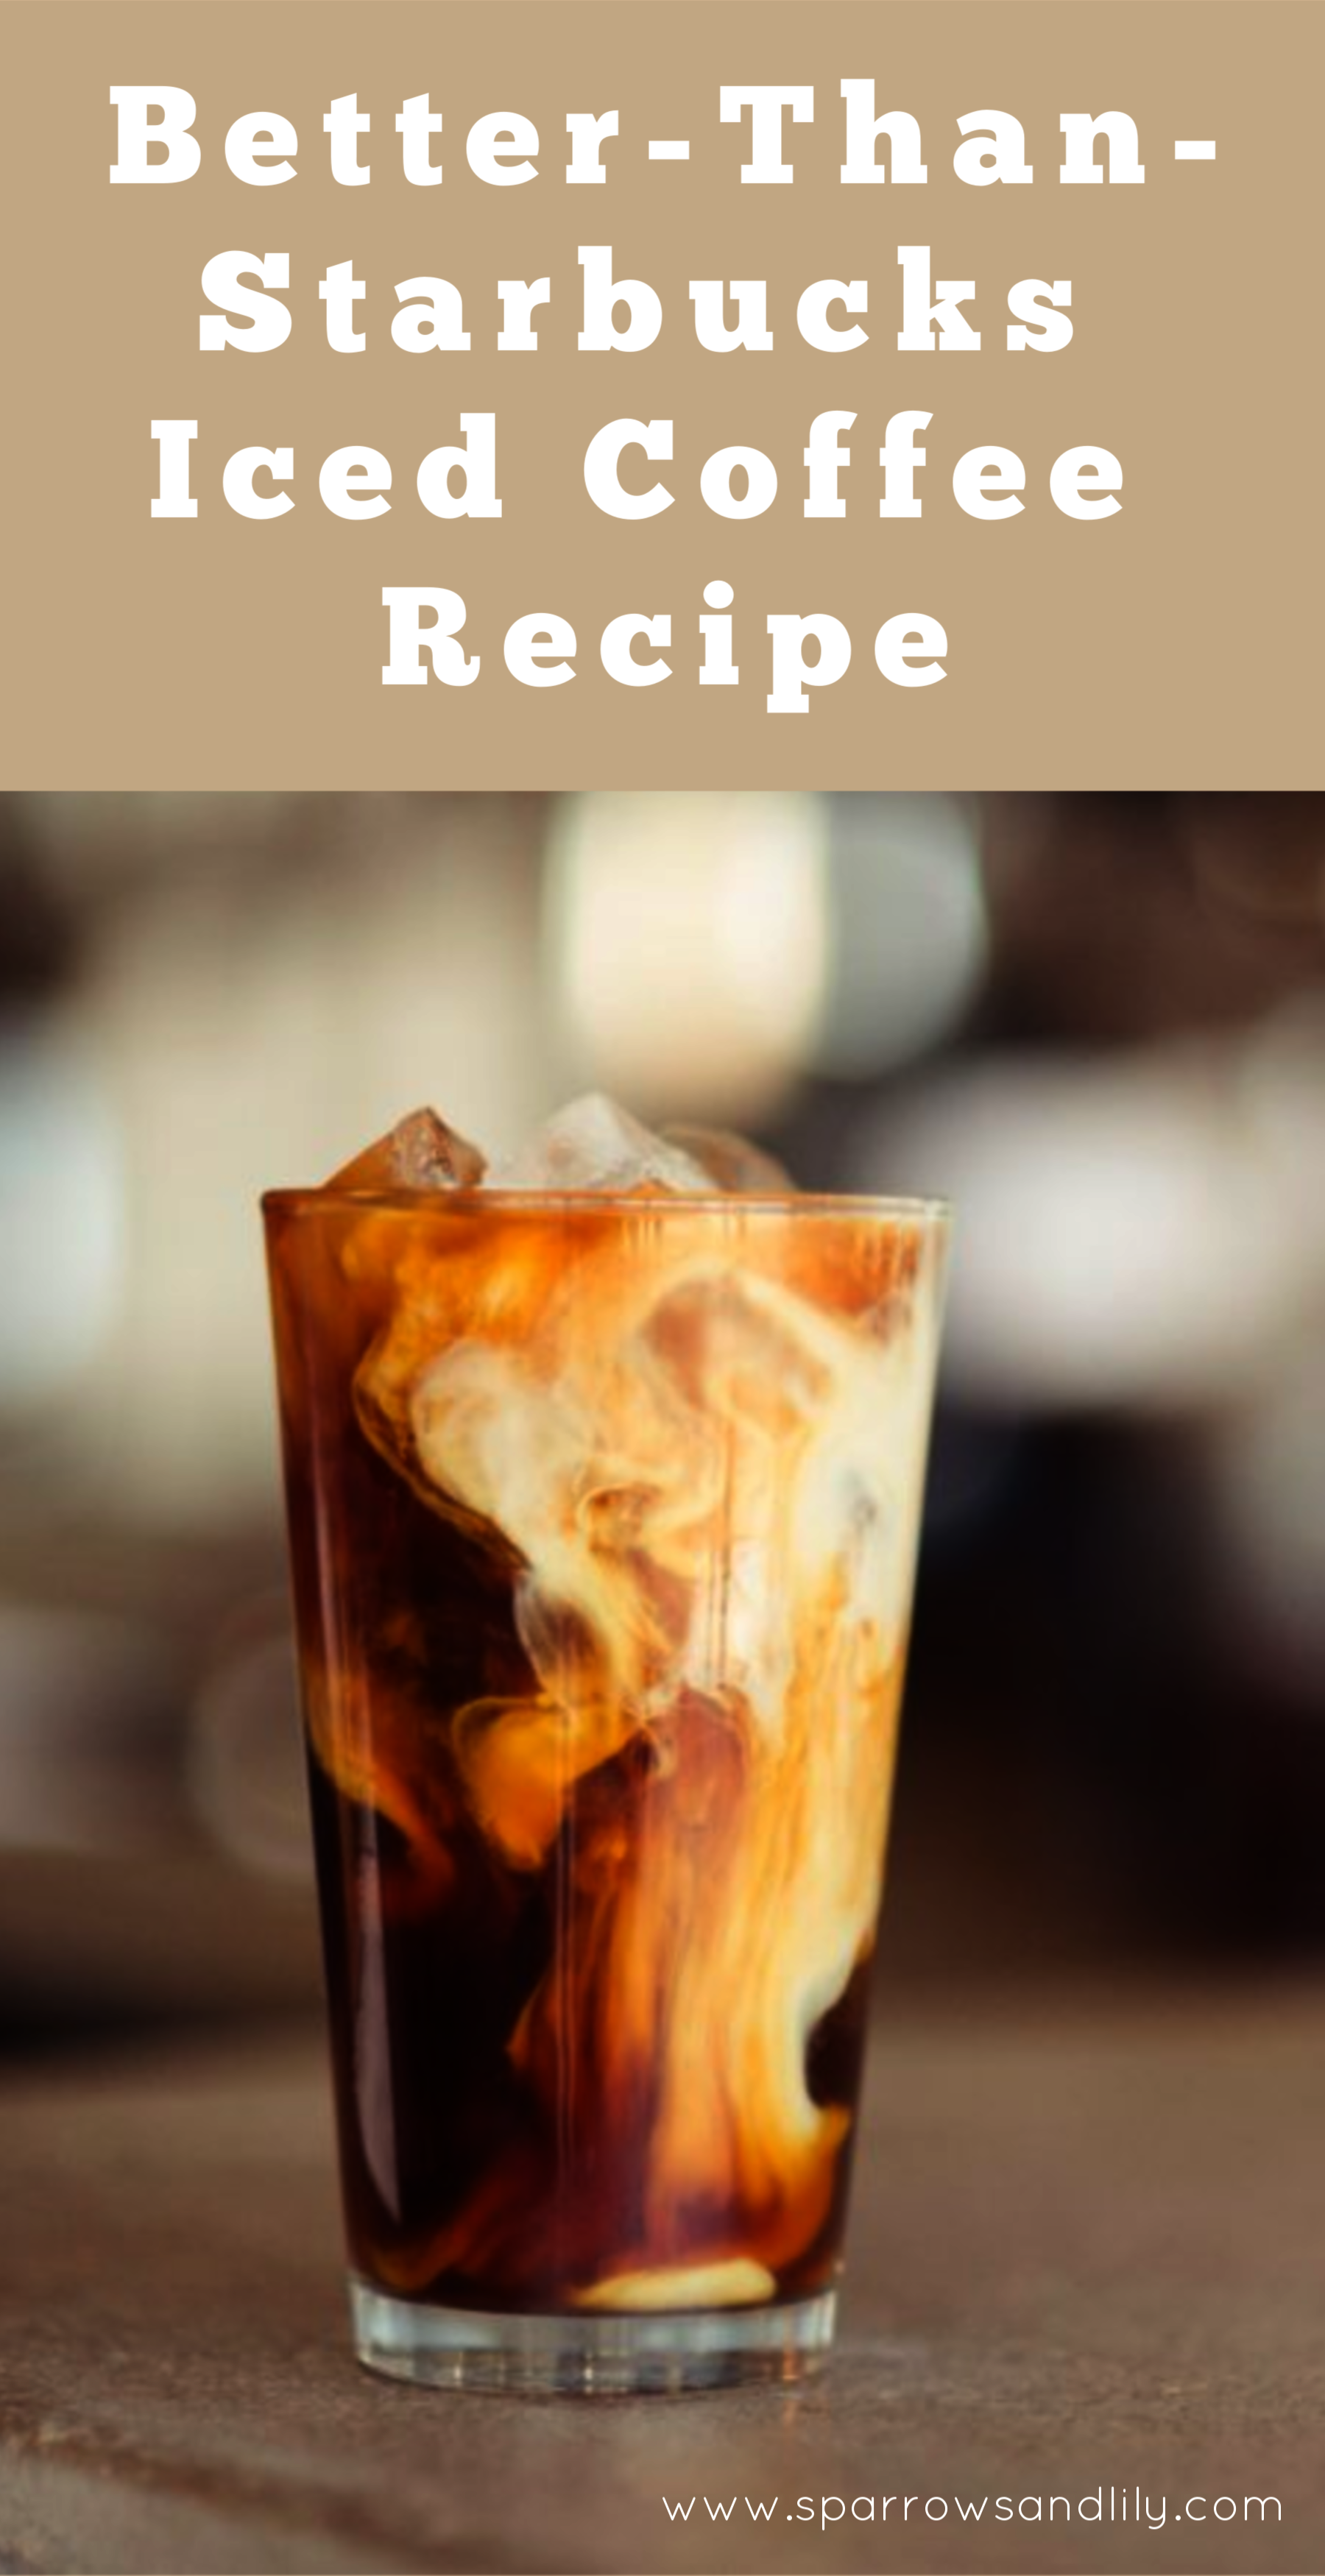 Best Decaf Coffee Drinks At Starbucks Coffee Meets Bagel Support That Coffee Bean Stock Beside Coffee Shops Coffee Drink Recipes Chocolate Drinks Iced Coffee